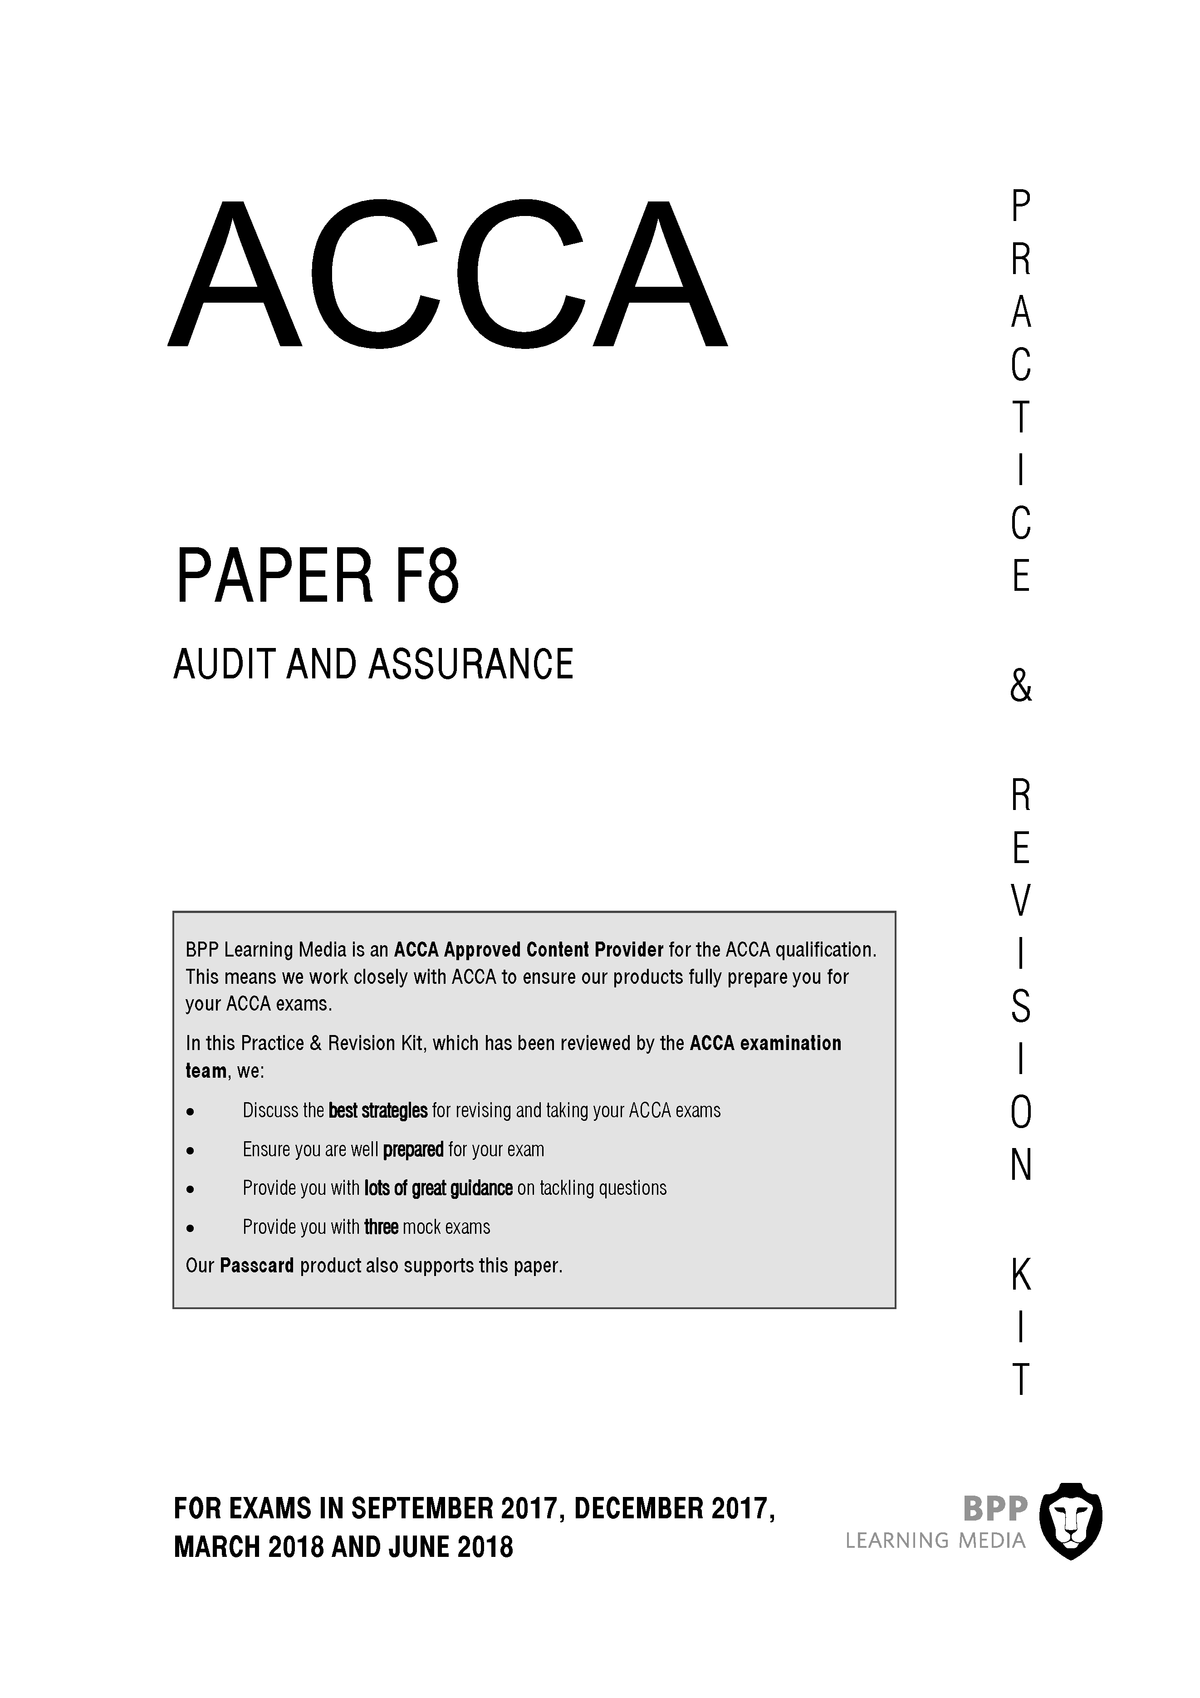 ACCA F8 BPP 2018 revision kit - MFC - StuDocu